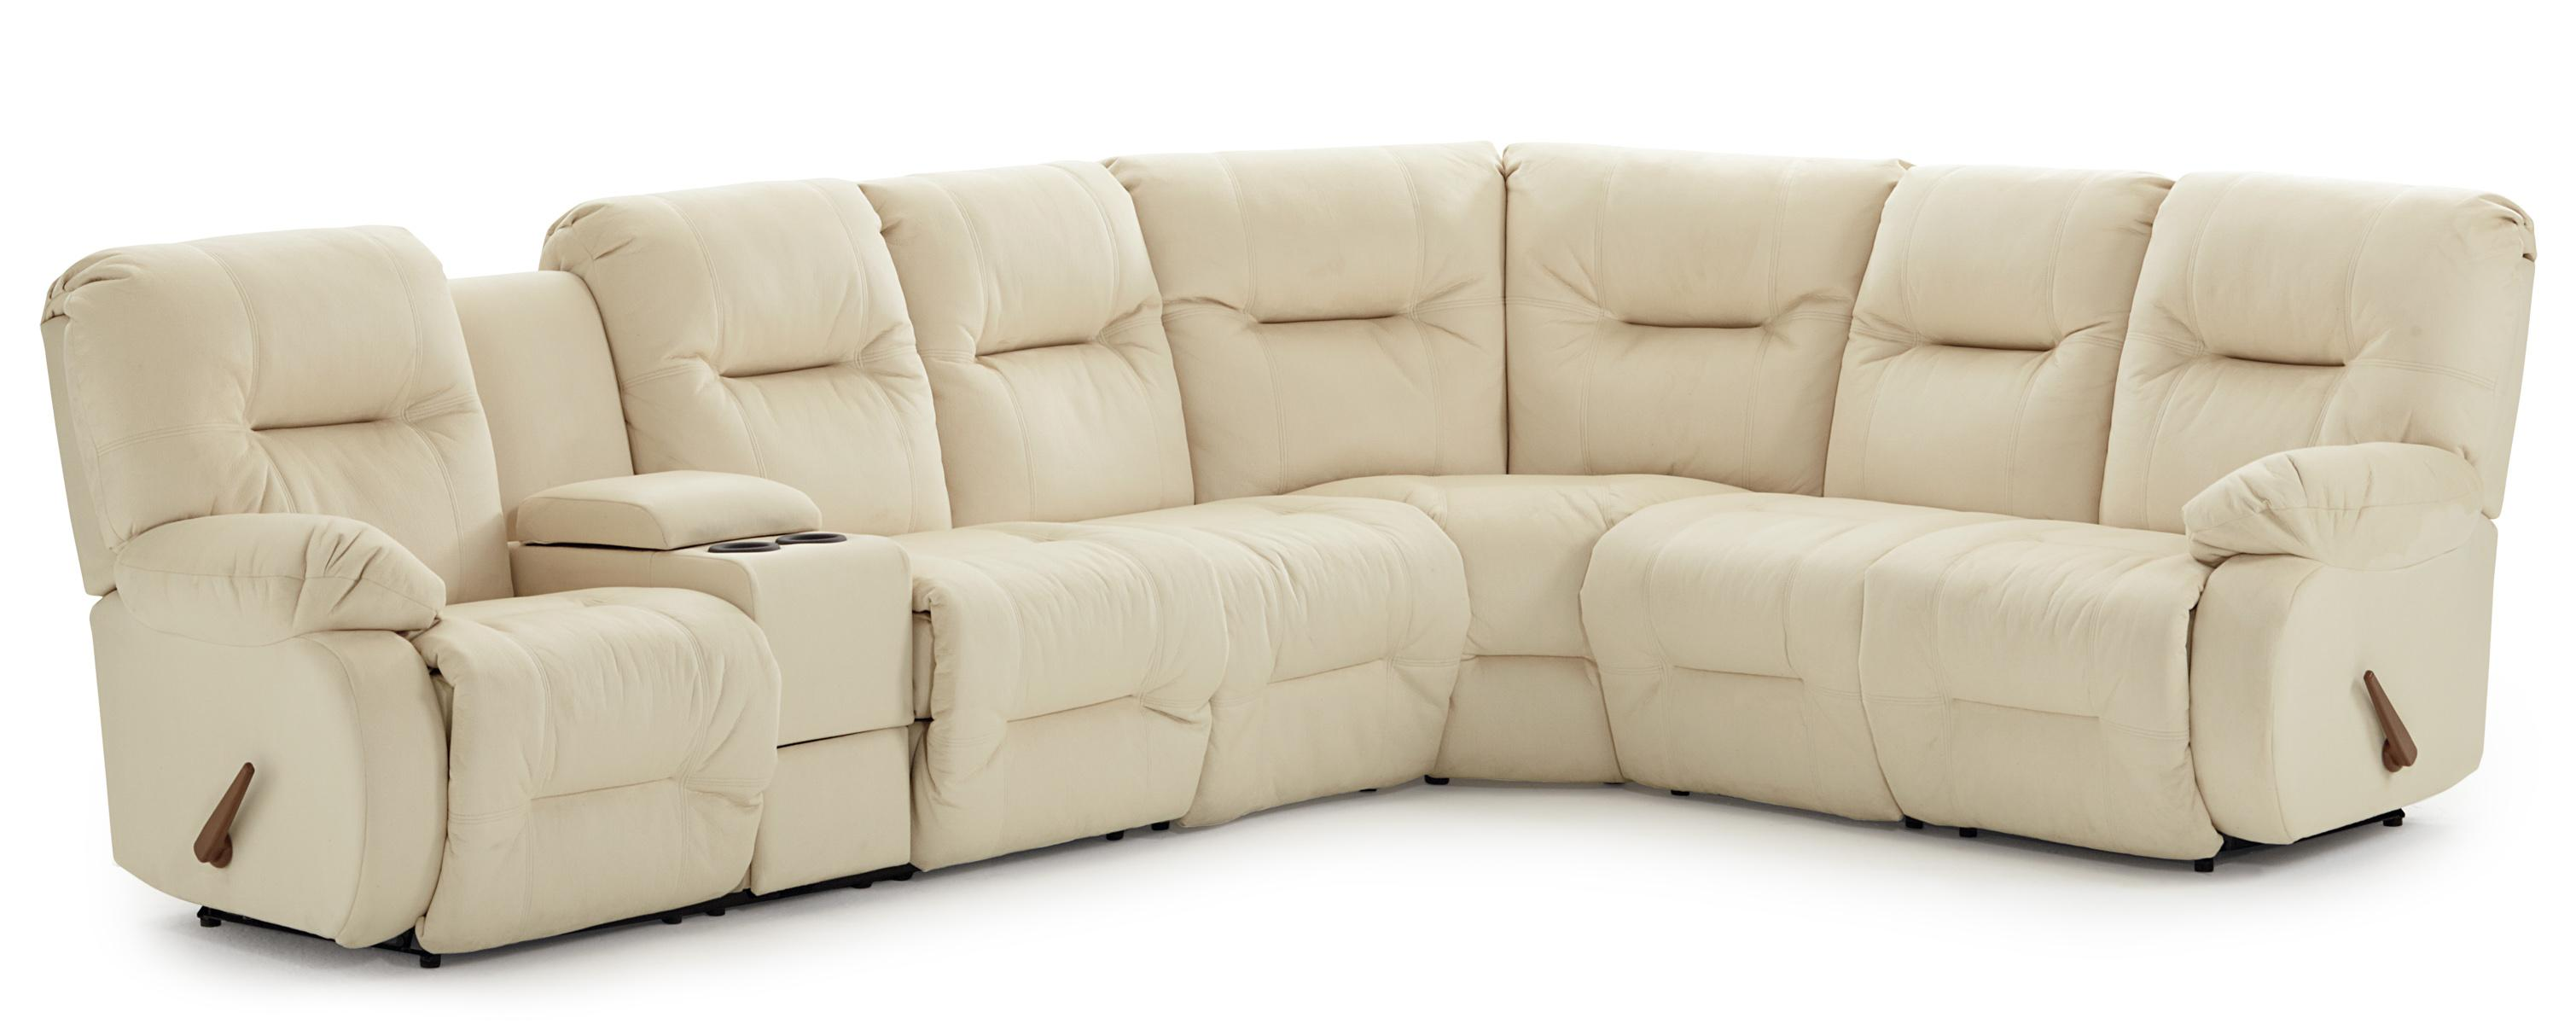 Casual Power Reclining Sectional Sofa with Storage Console and Cupholders  sc 1 st  Wolf Furniture & Casual Power Reclining Sectional Sofa with Storage Console and ... islam-shia.org